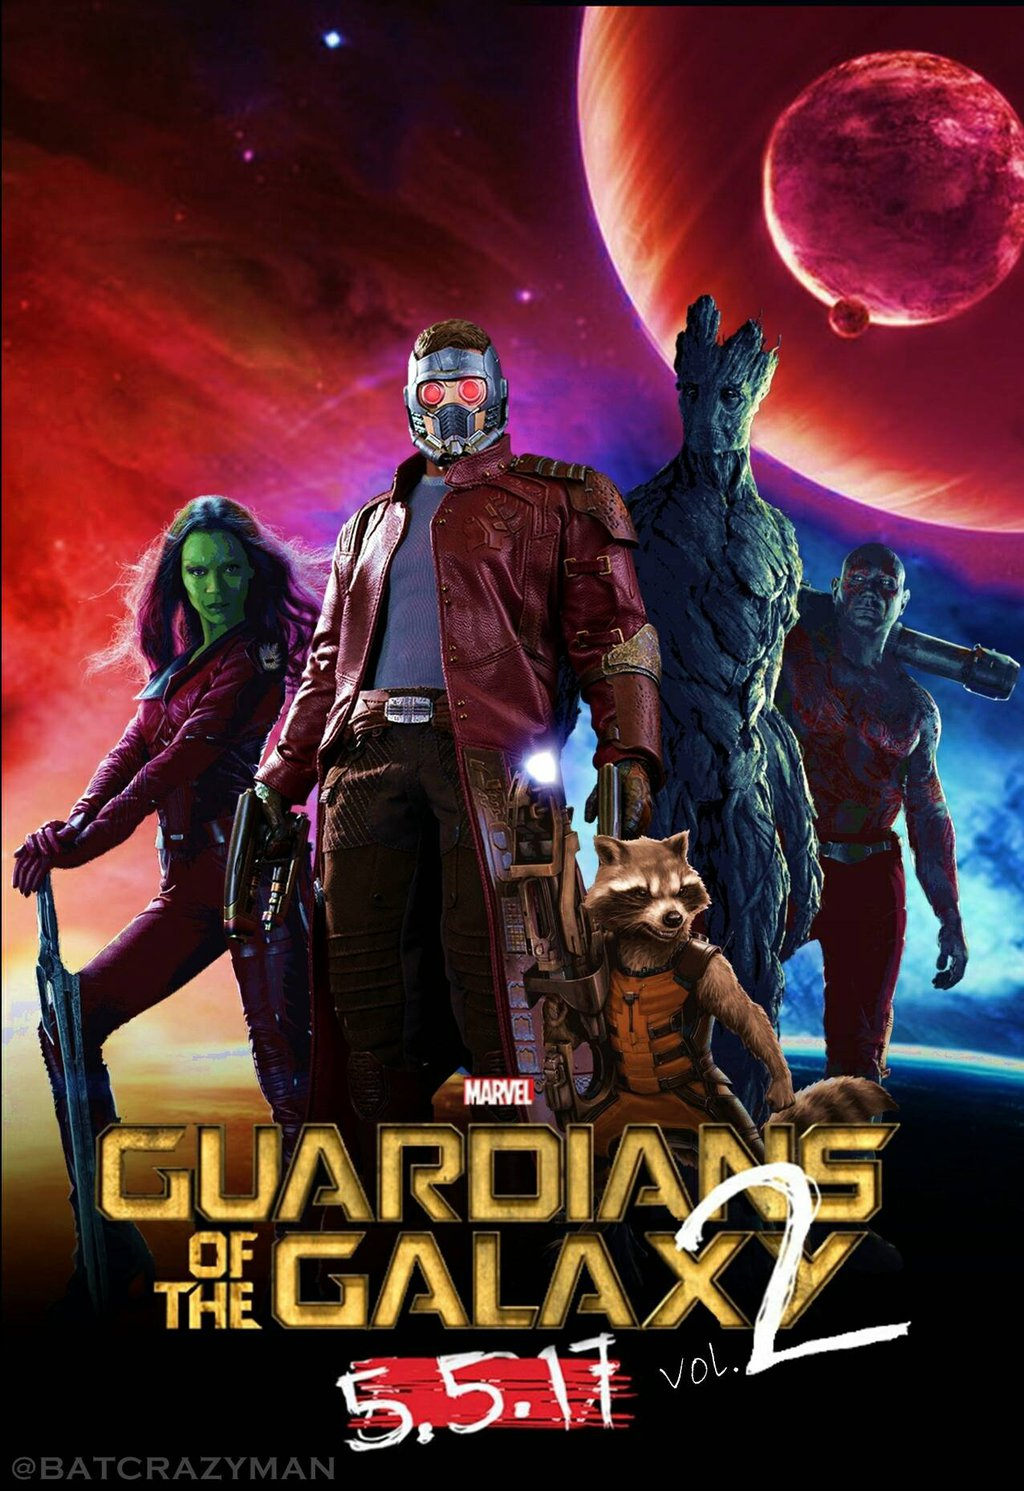 New Images And Wallpaper For Your Guardians Of The Galaxy Vol